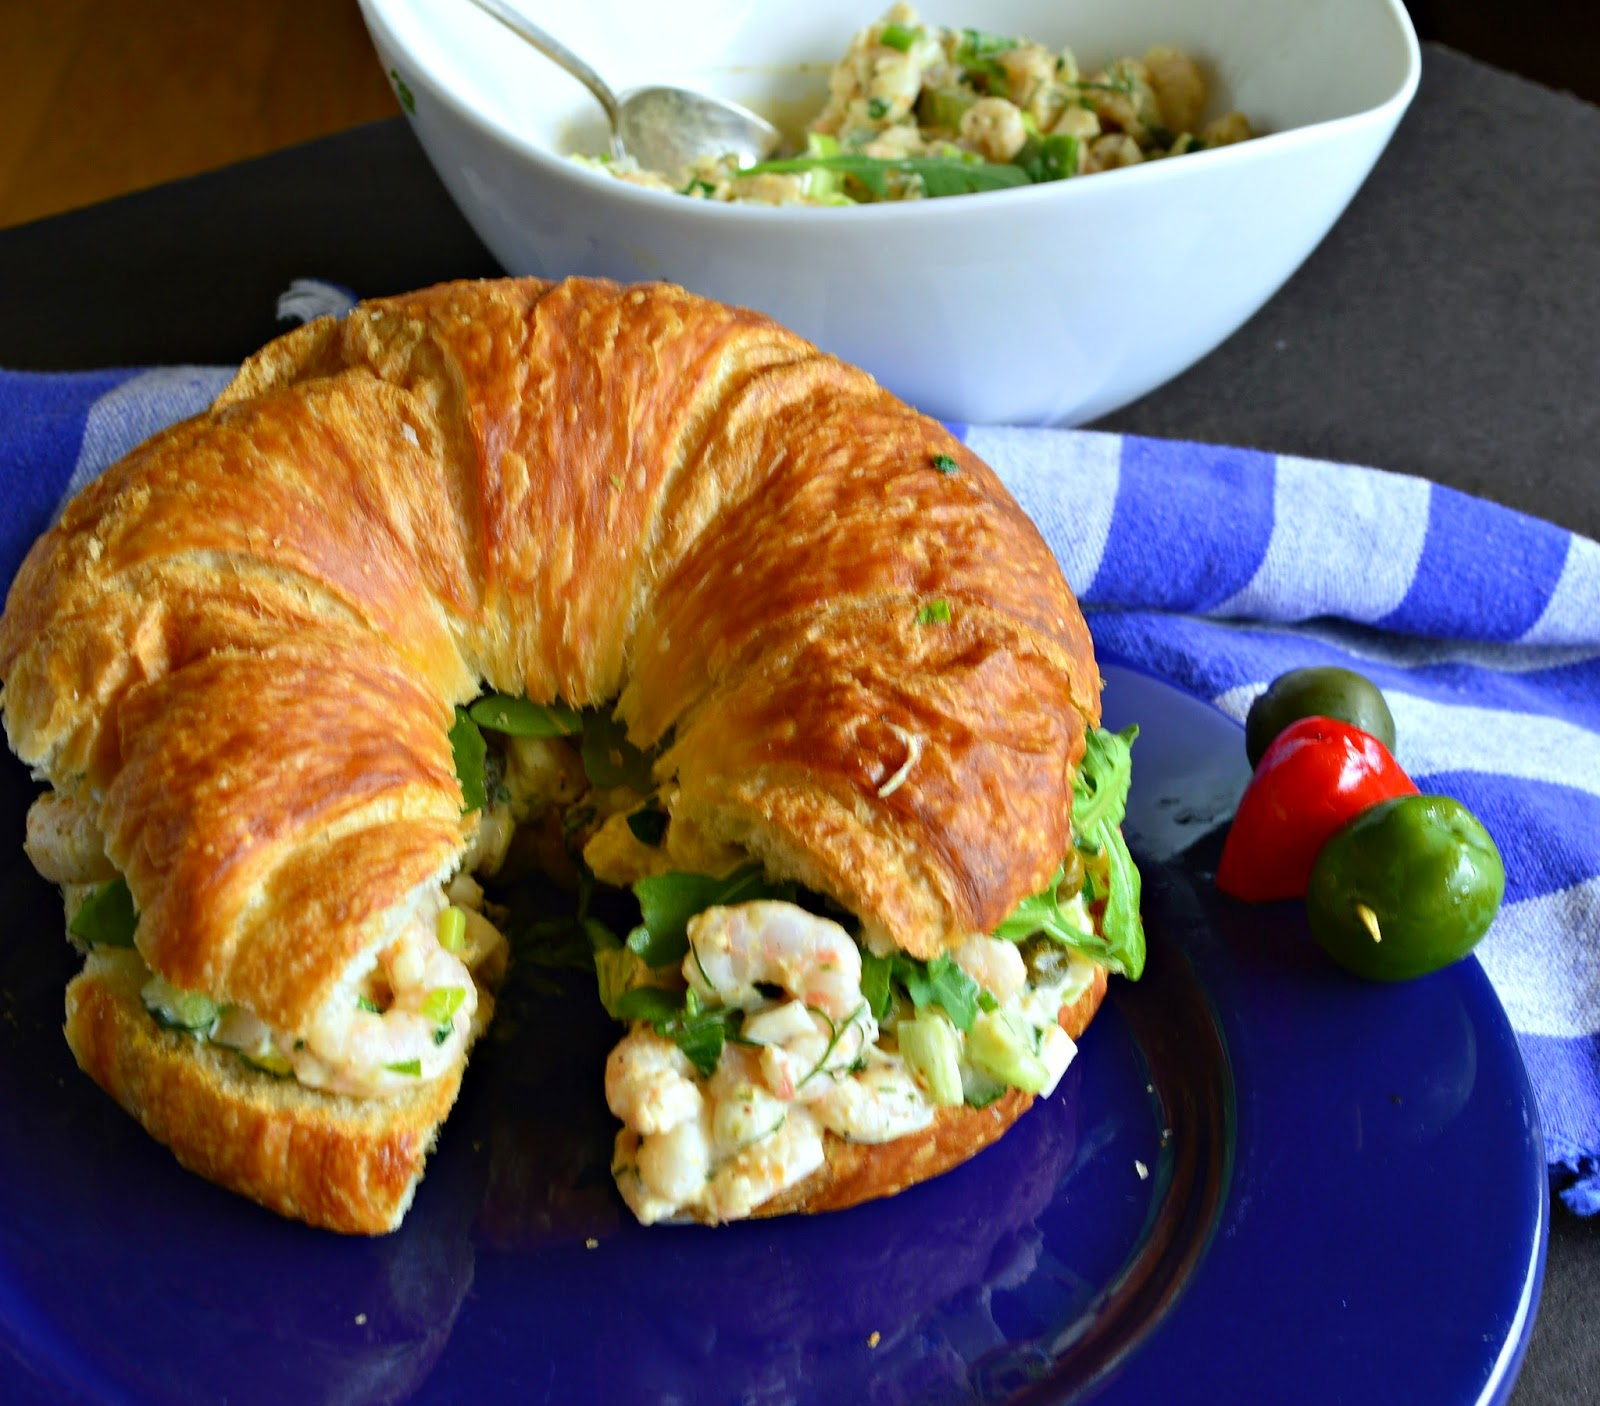 Shrimp Salad croissants are very special. Seasoned with Old Bay, capers and a few other things, these simple croissant sandwiches will make lunch, brunch or dinner special! #shrimp #croissants #sandwiches www.thisishowicook.com